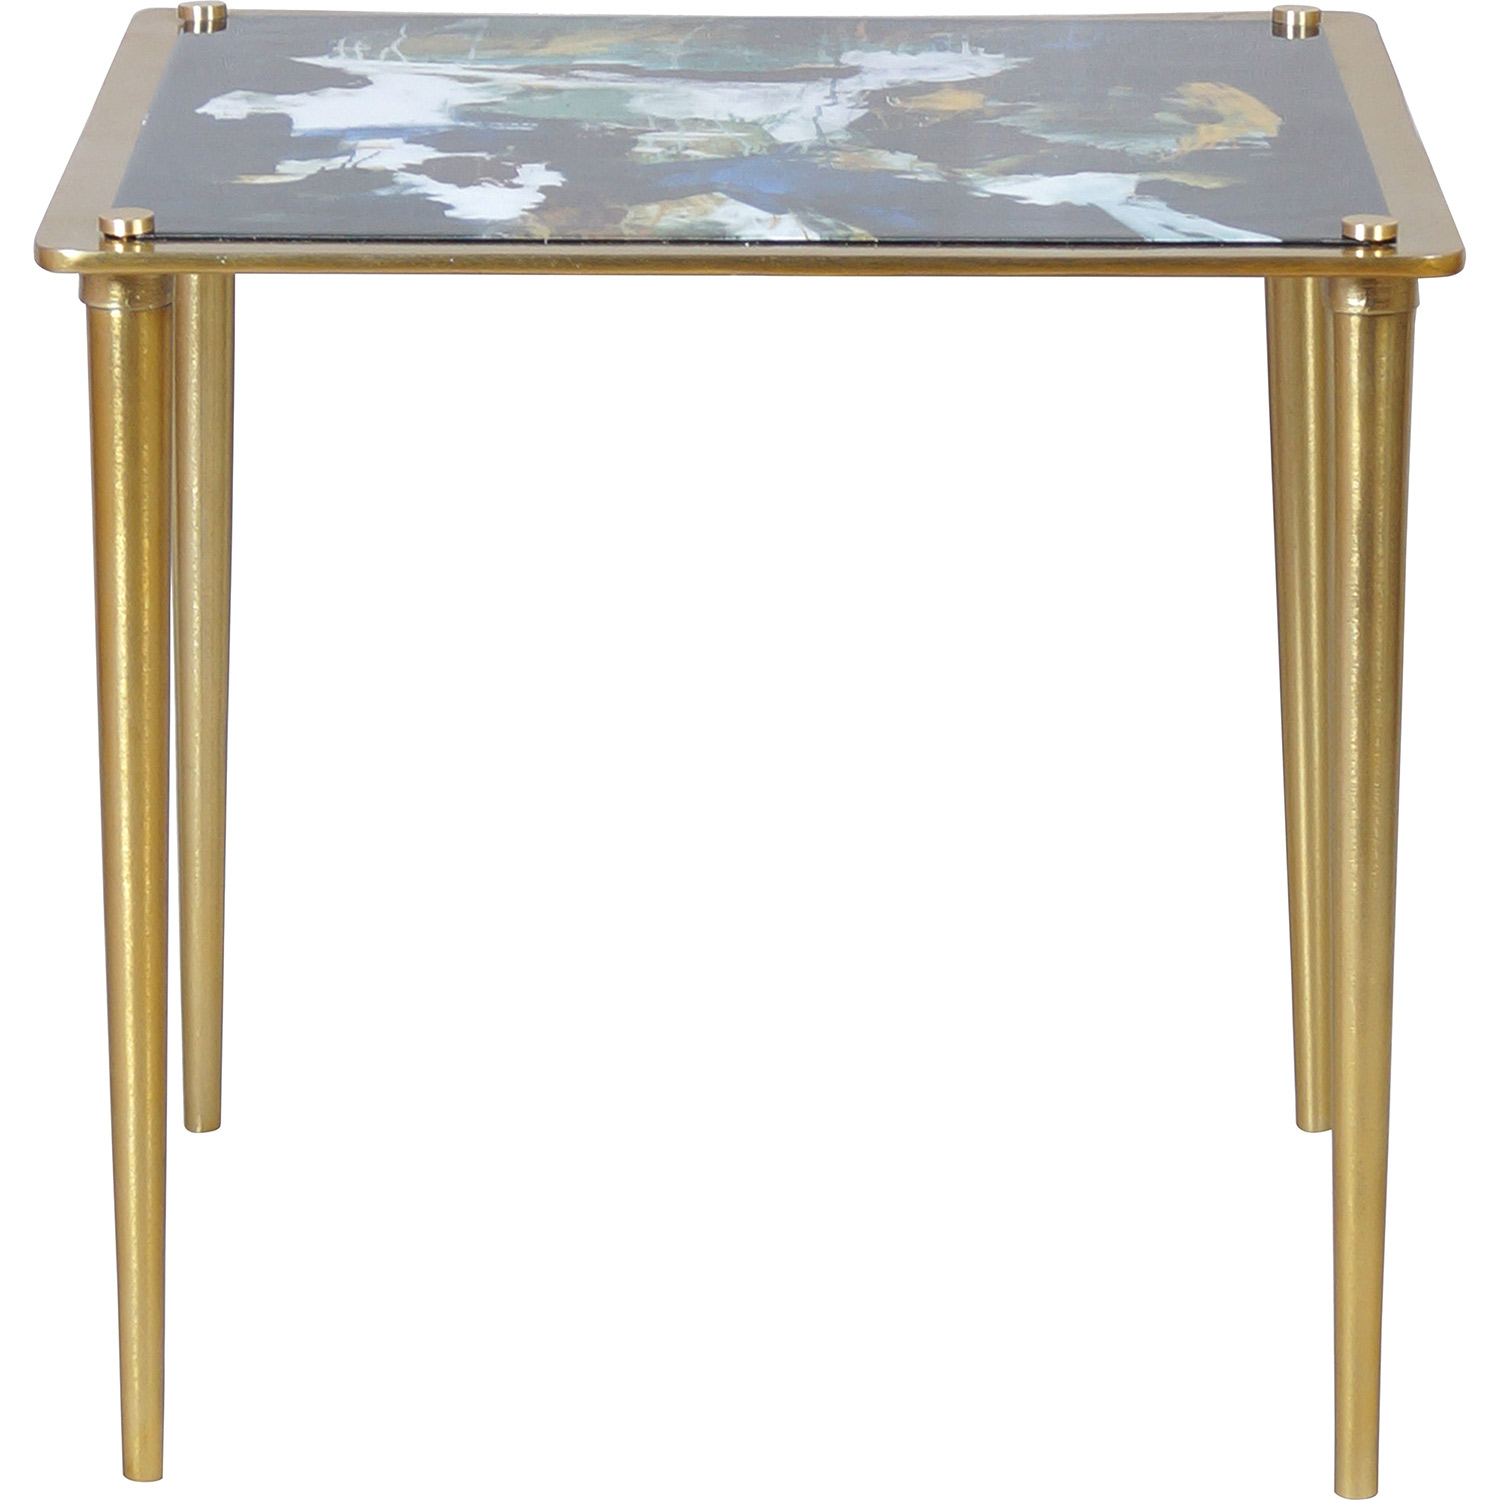 Ren-Wil Noble Accent Table - Brass